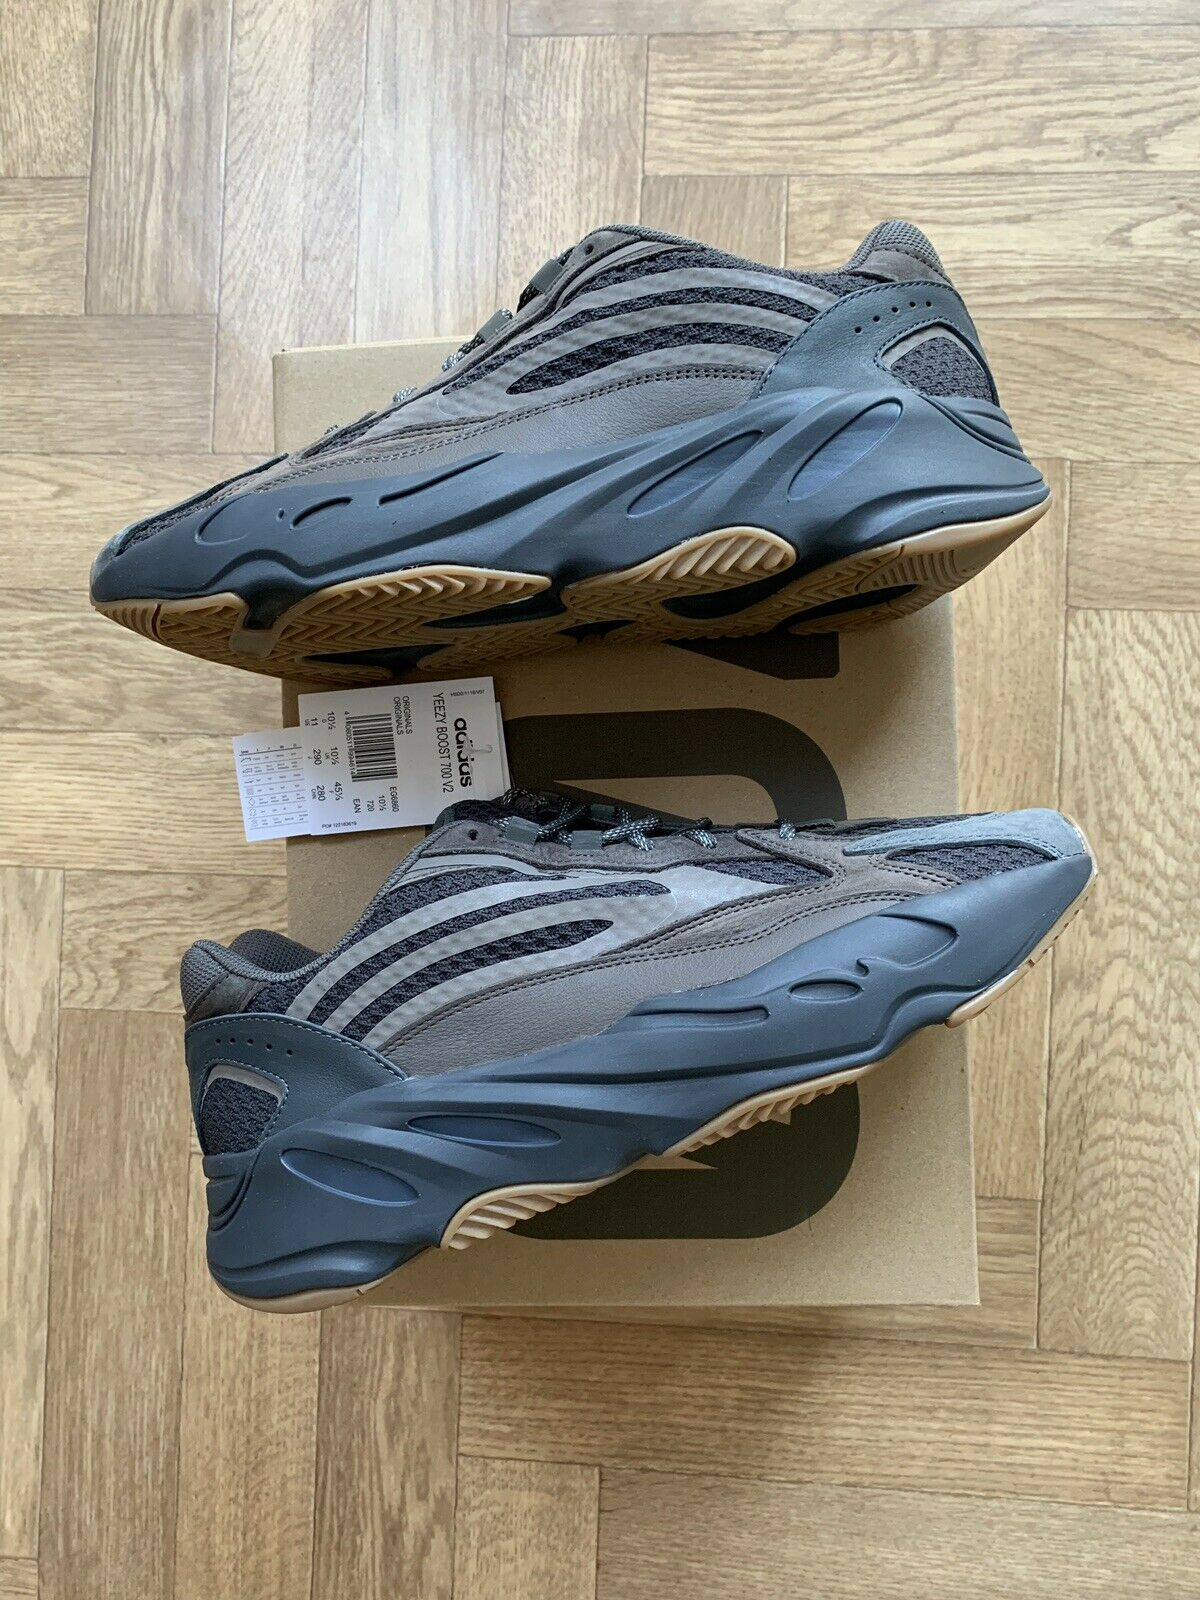 Adidas Zeezy Boost 700 V2 Geode Size 10.5 Boxed New EG6860 Quality shoes